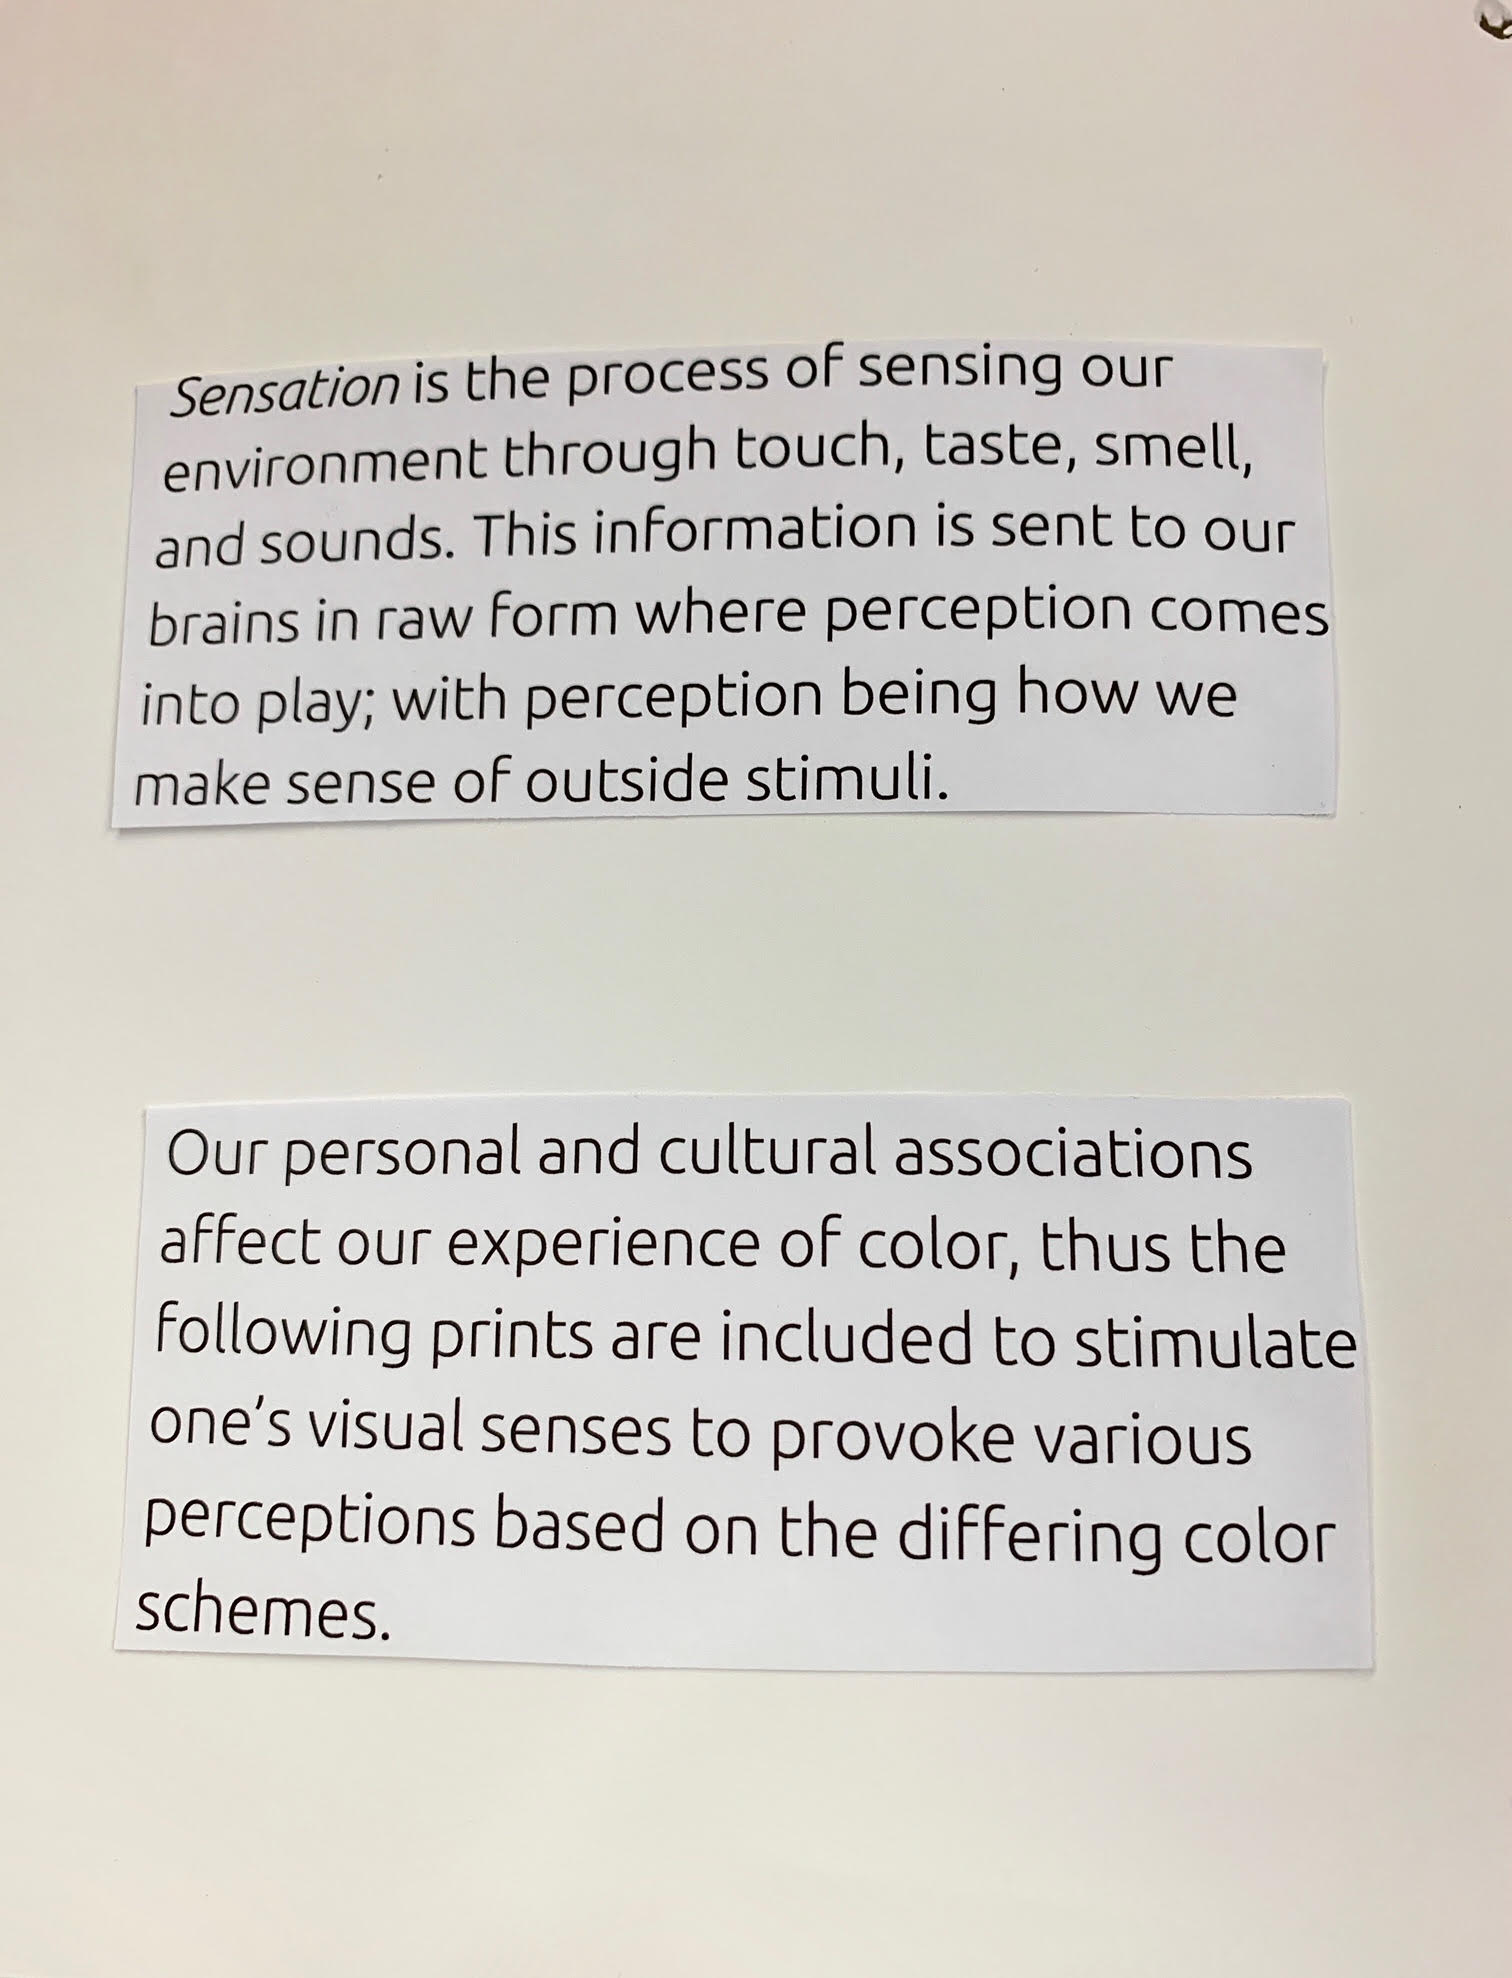 Page 2. Caption: Description of factors that influence our sensation such as our experiences in life, cultural backgrounds, and how we interact with outside stimuli with our senses. These all affect our perception. The purpose of this chapbook is to provoke various reactions from the viewer through differing color schemes throughout the same print subject.